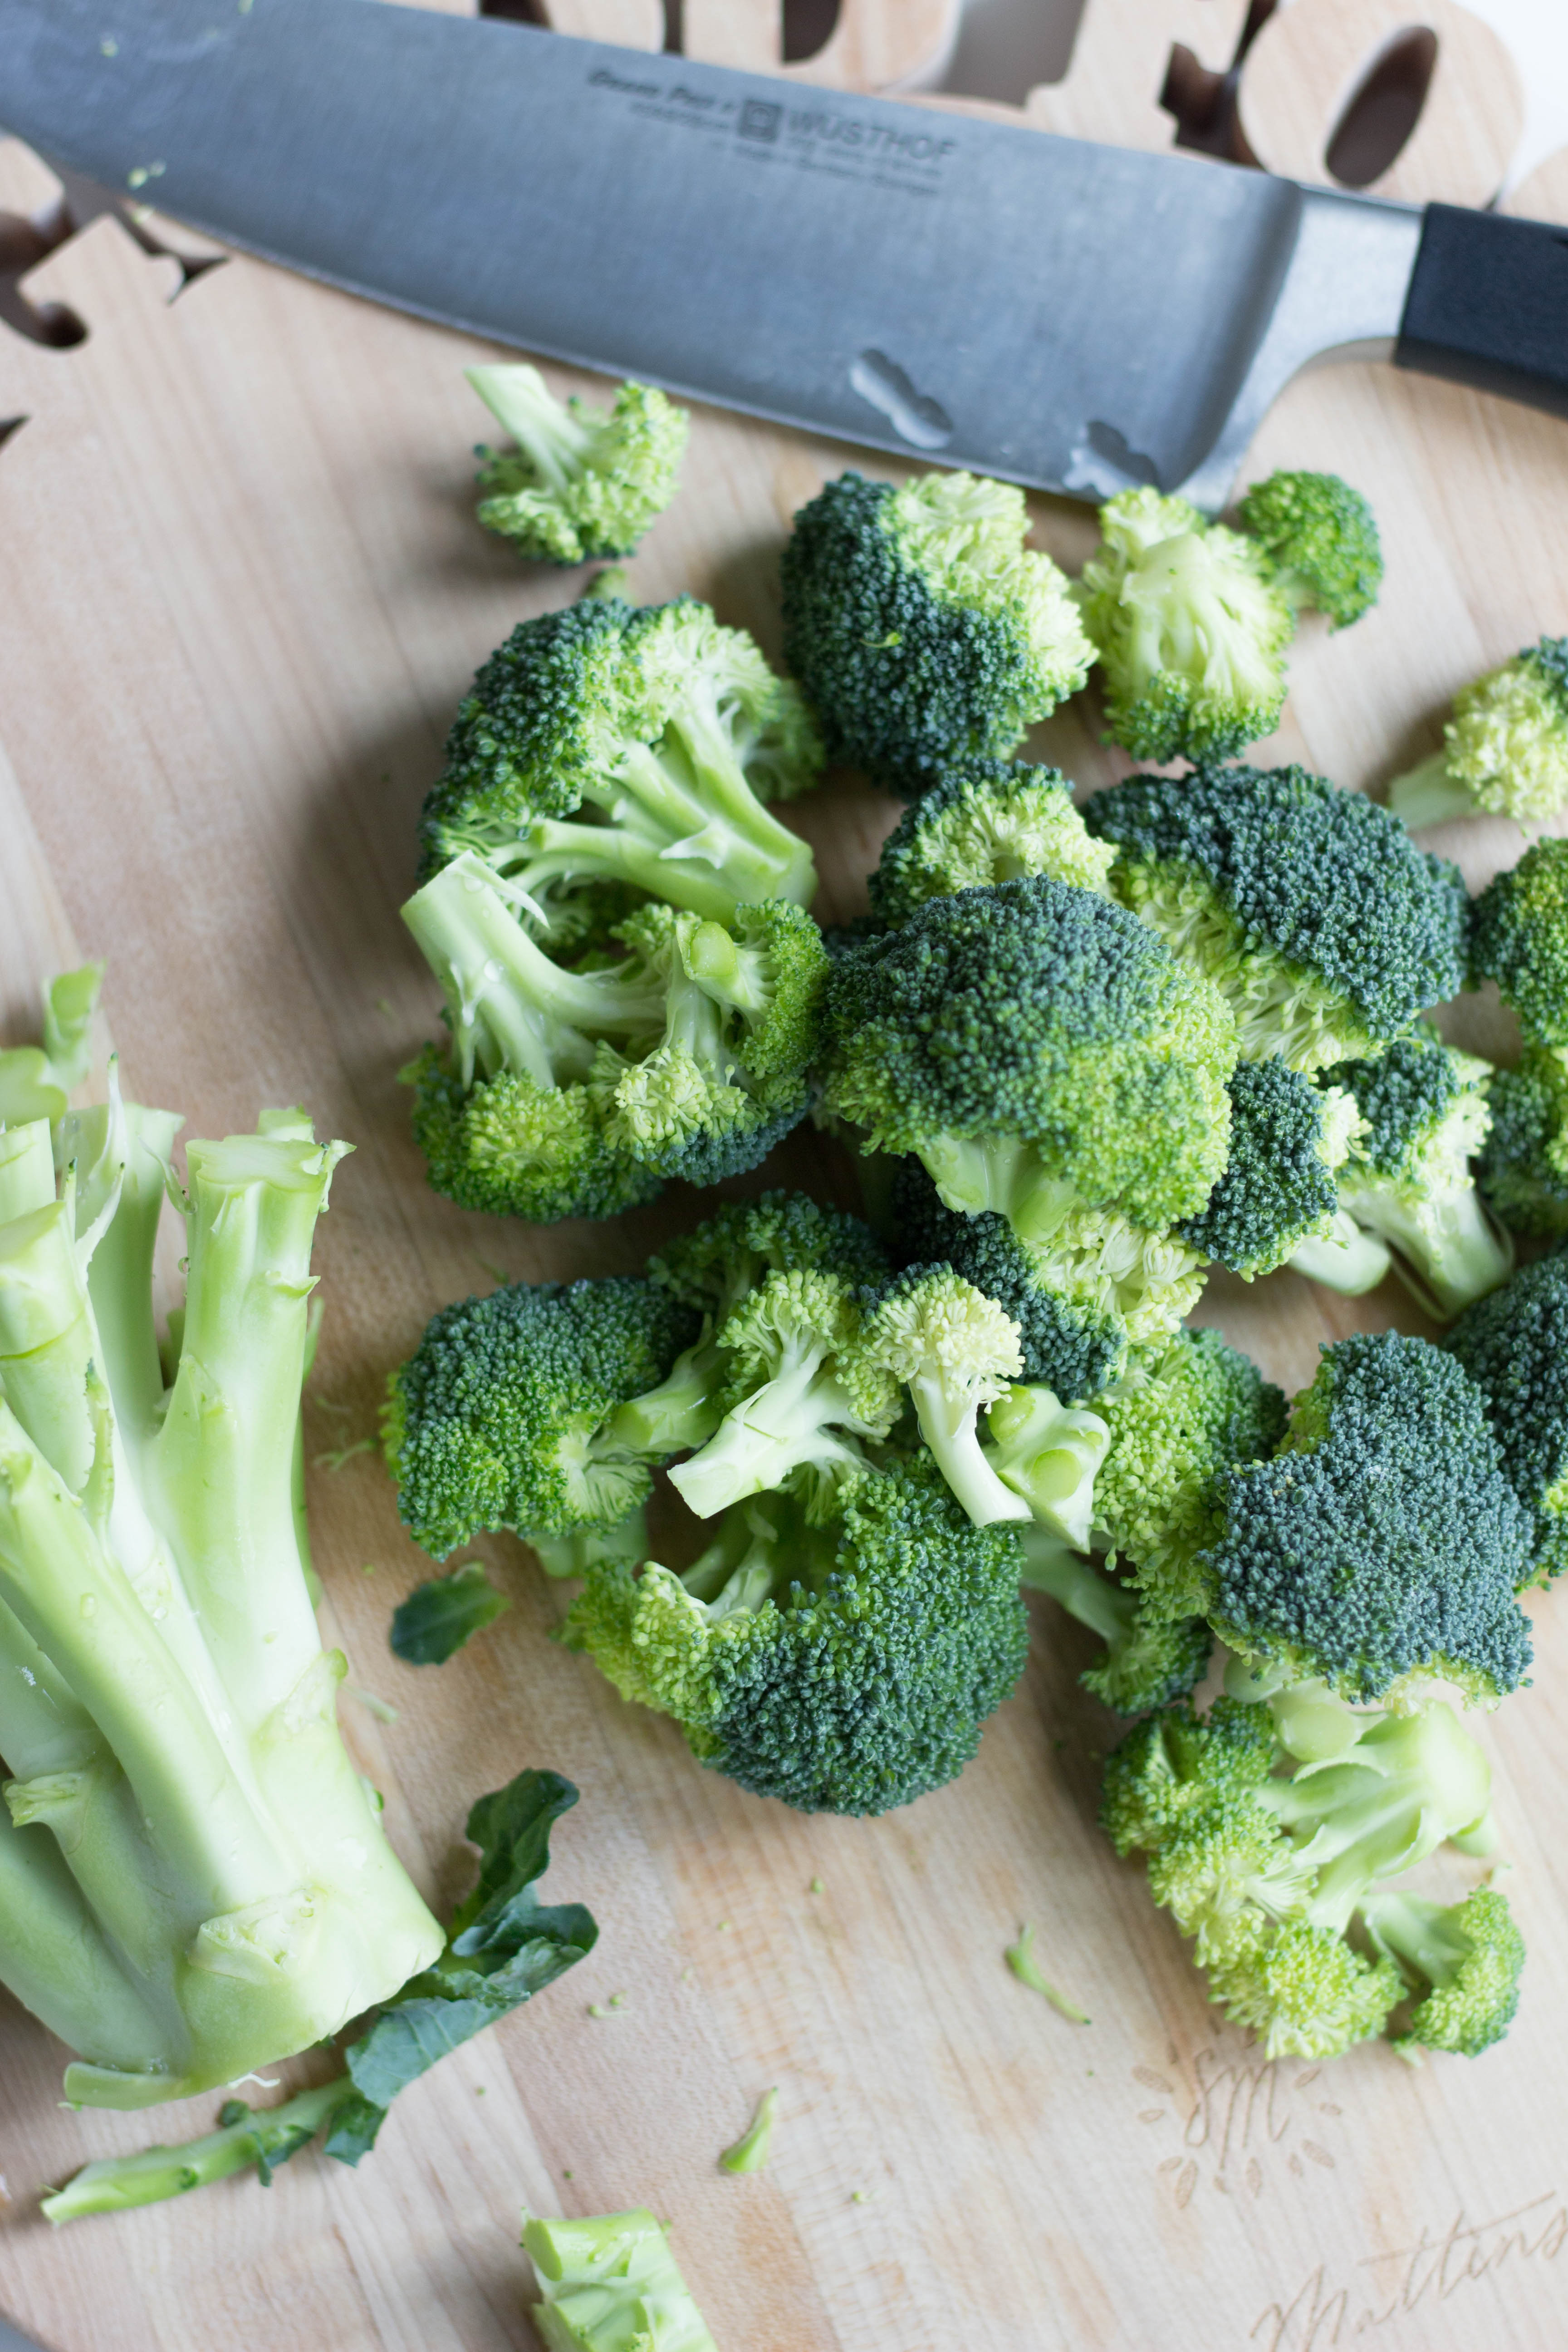 Easy Roasted Broccoli by Stacey Mattinson Nutrition